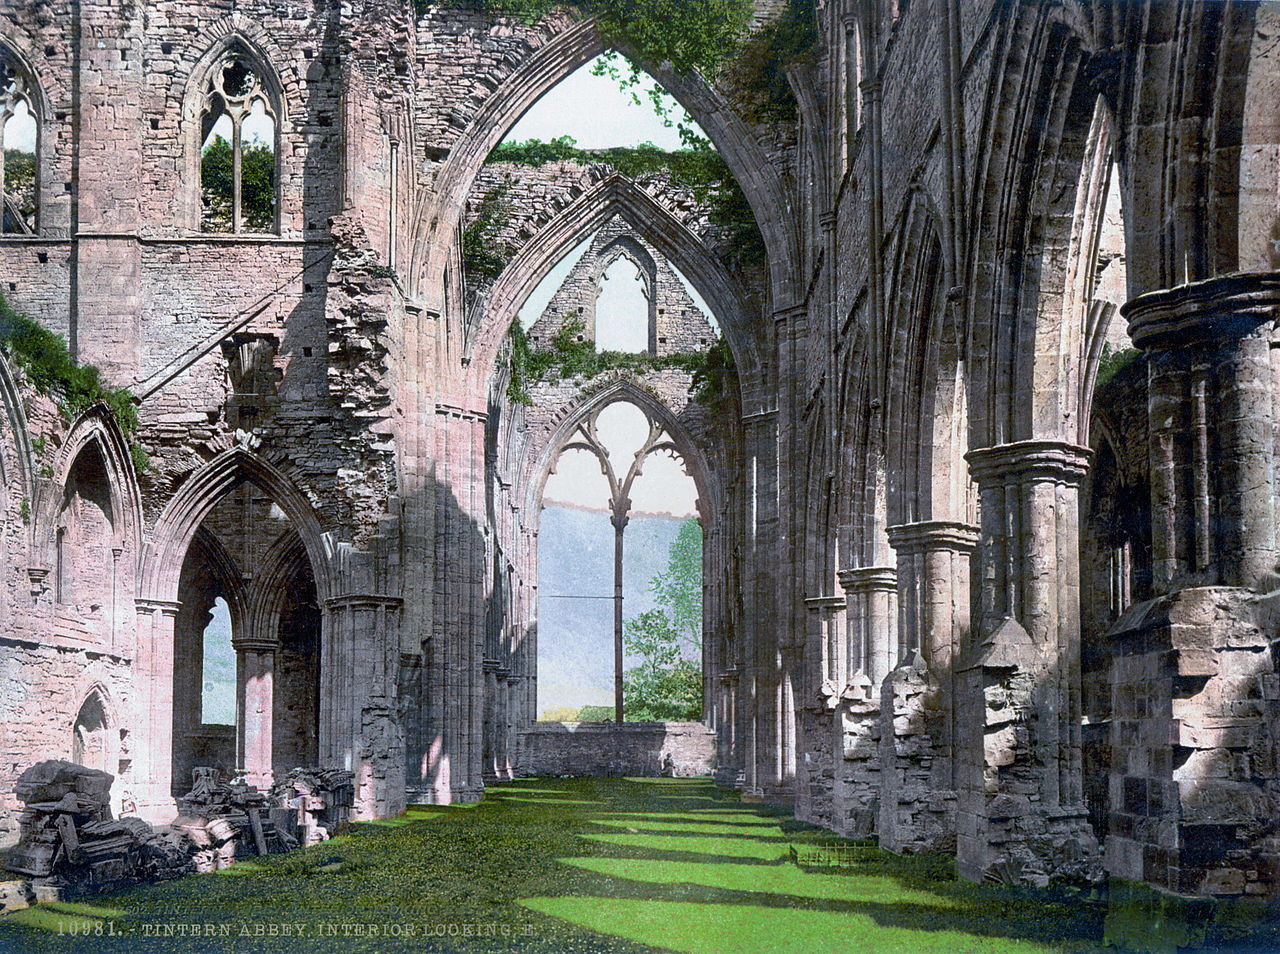 essay on tintern abbey The romantic imagination in wordsworth's tintern abbey essay abbey tintern above miles few a composed lines of analysis and.